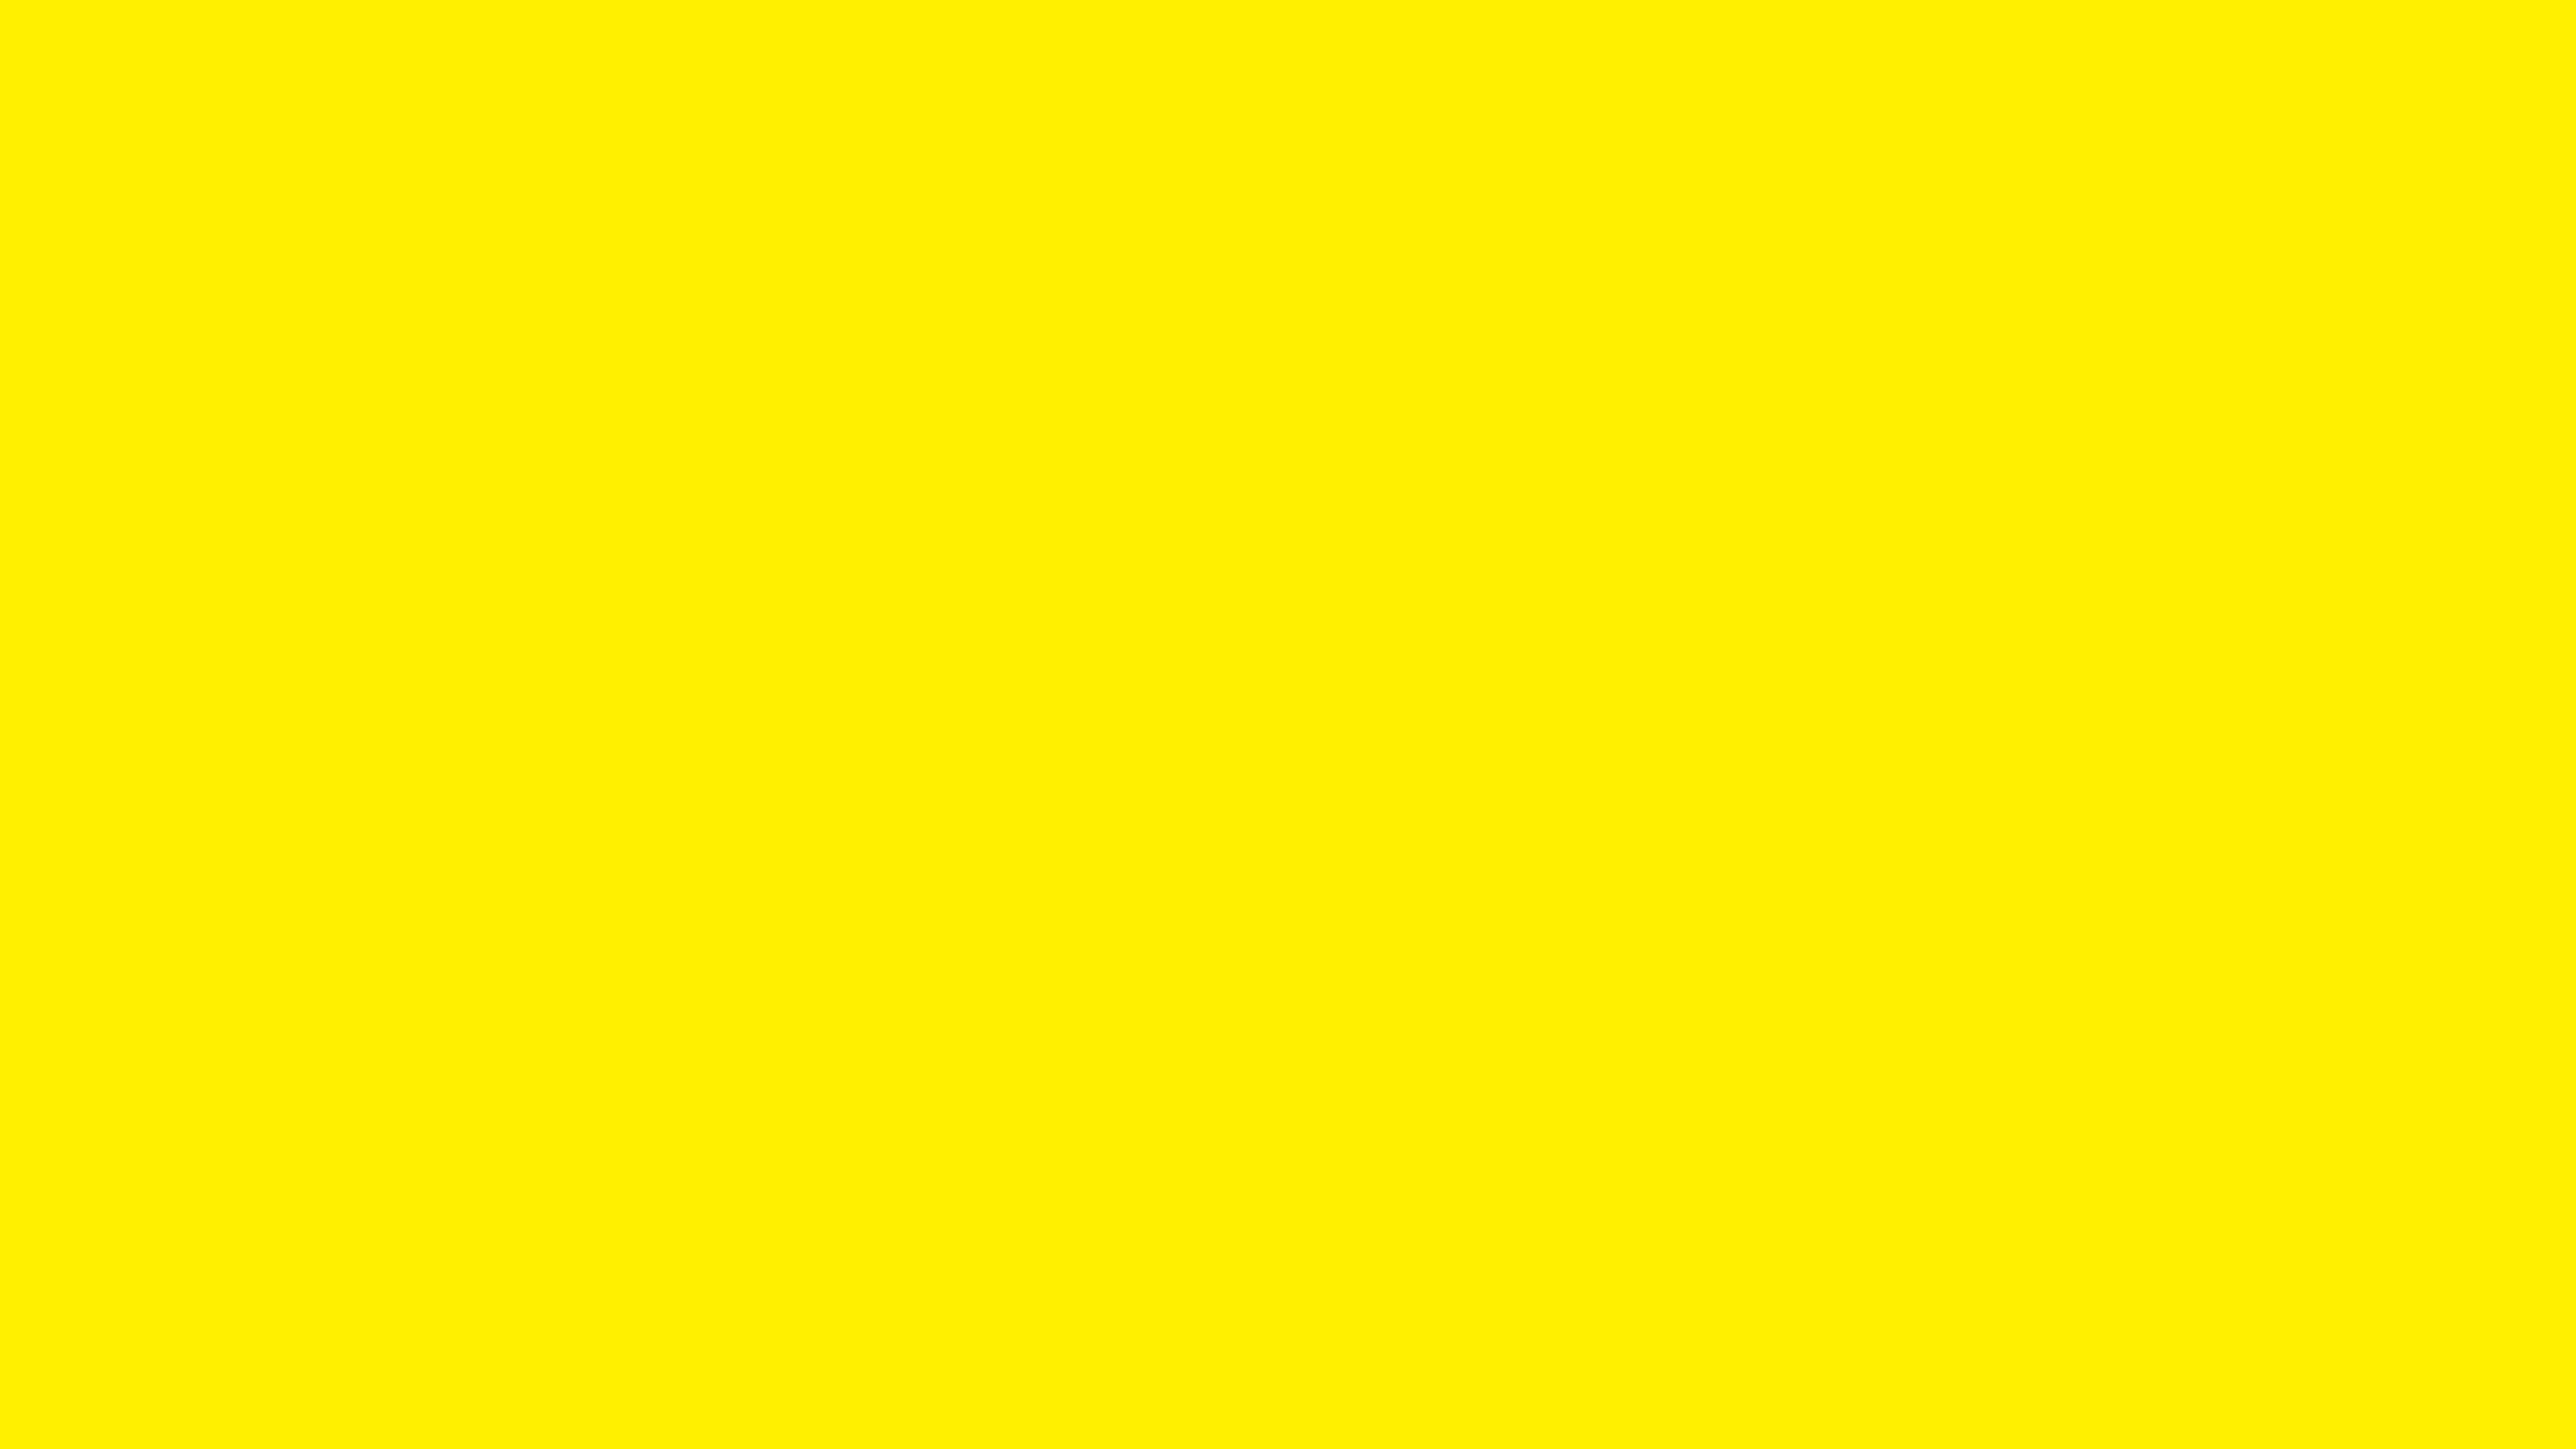 4096x2304 Yellow Rose Solid Color Background